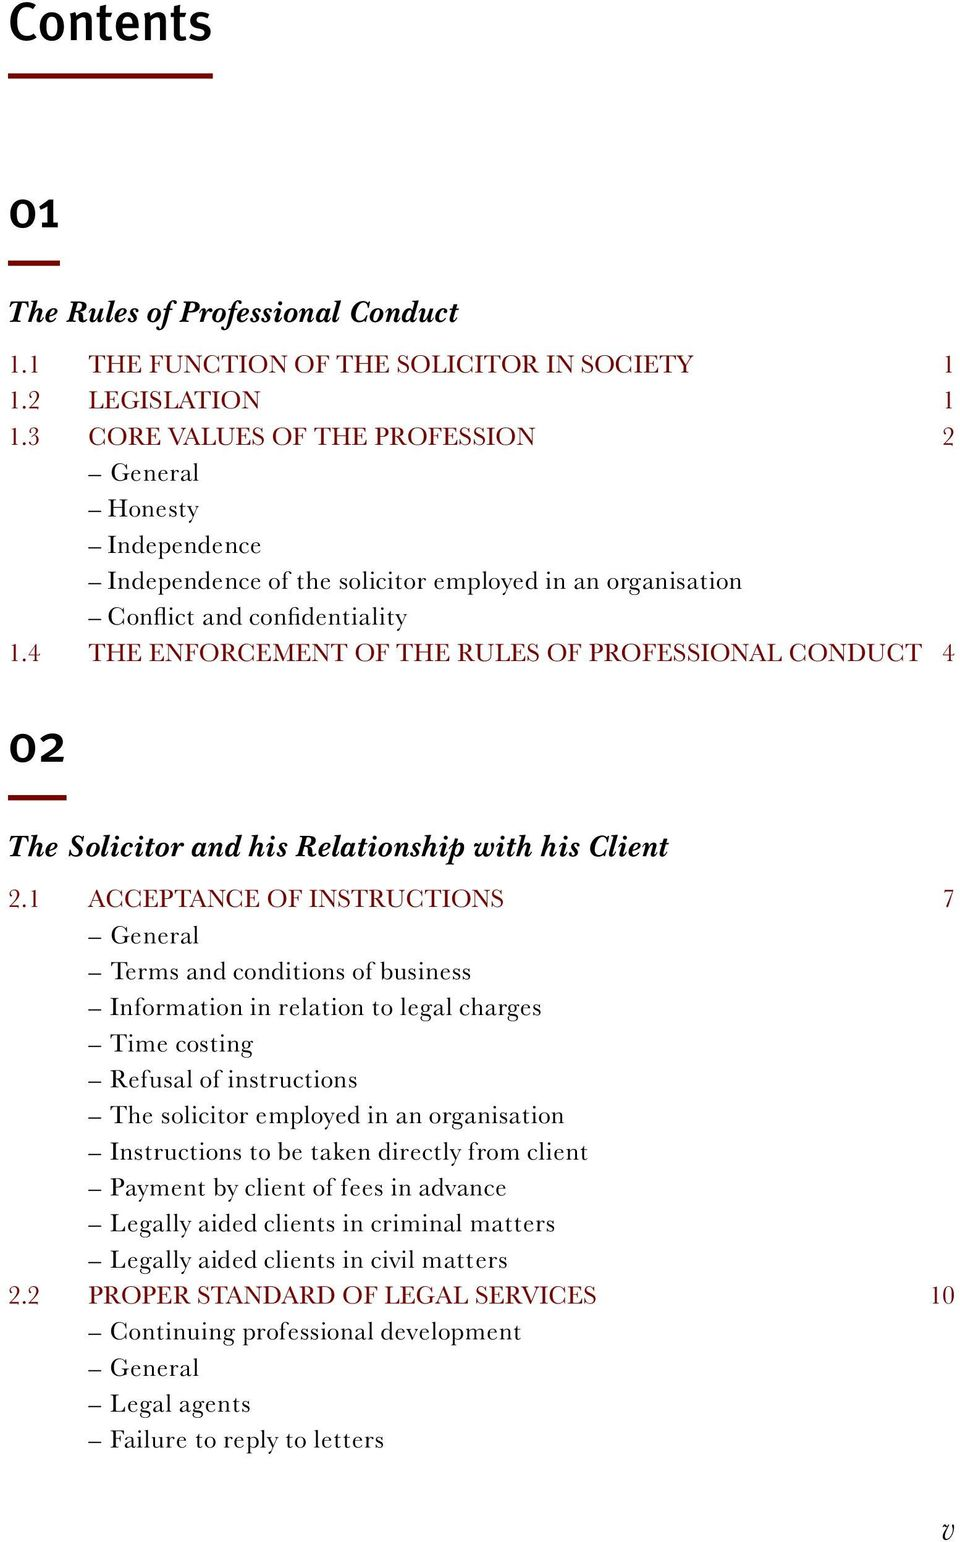 4 The Enforcement of the Rules of Professional Conduct 4 02 The Solicitor and his Relationship with his Client 2.